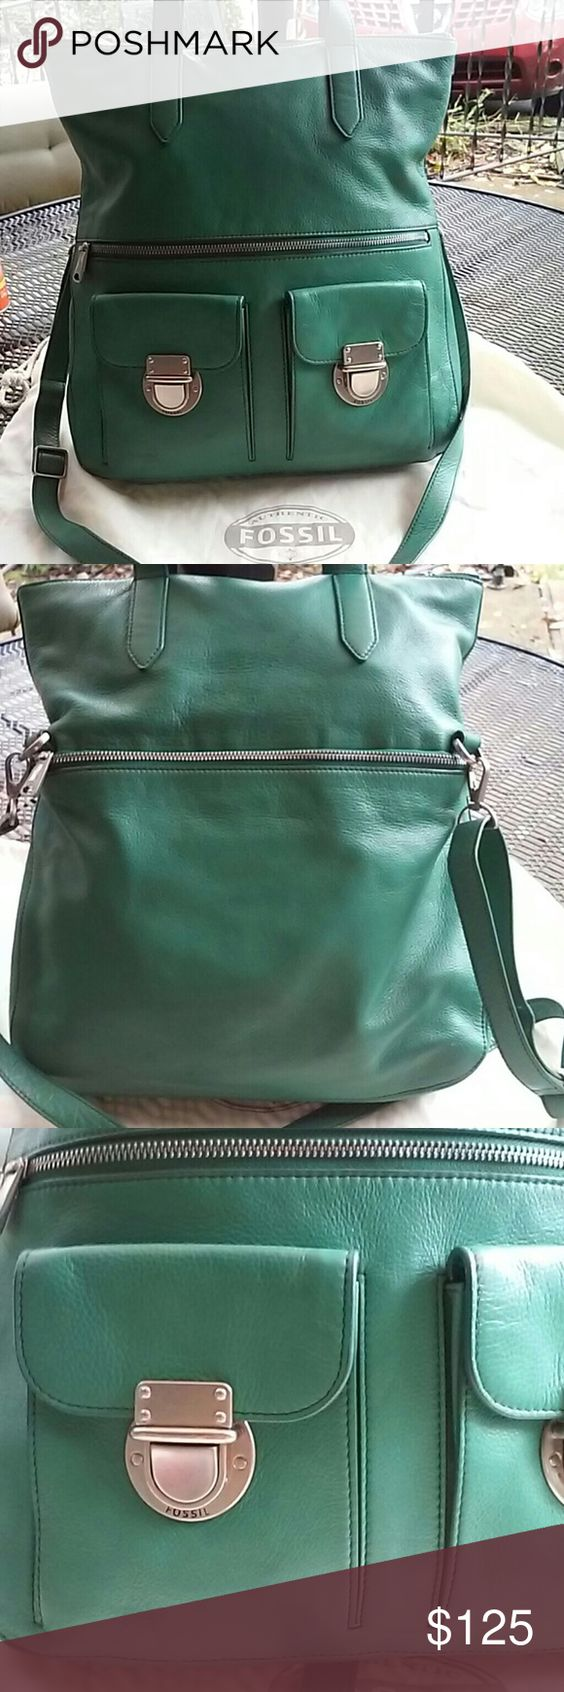 Fossil stunning fold over bag nwot New,comes with dust bag Fossil Bags